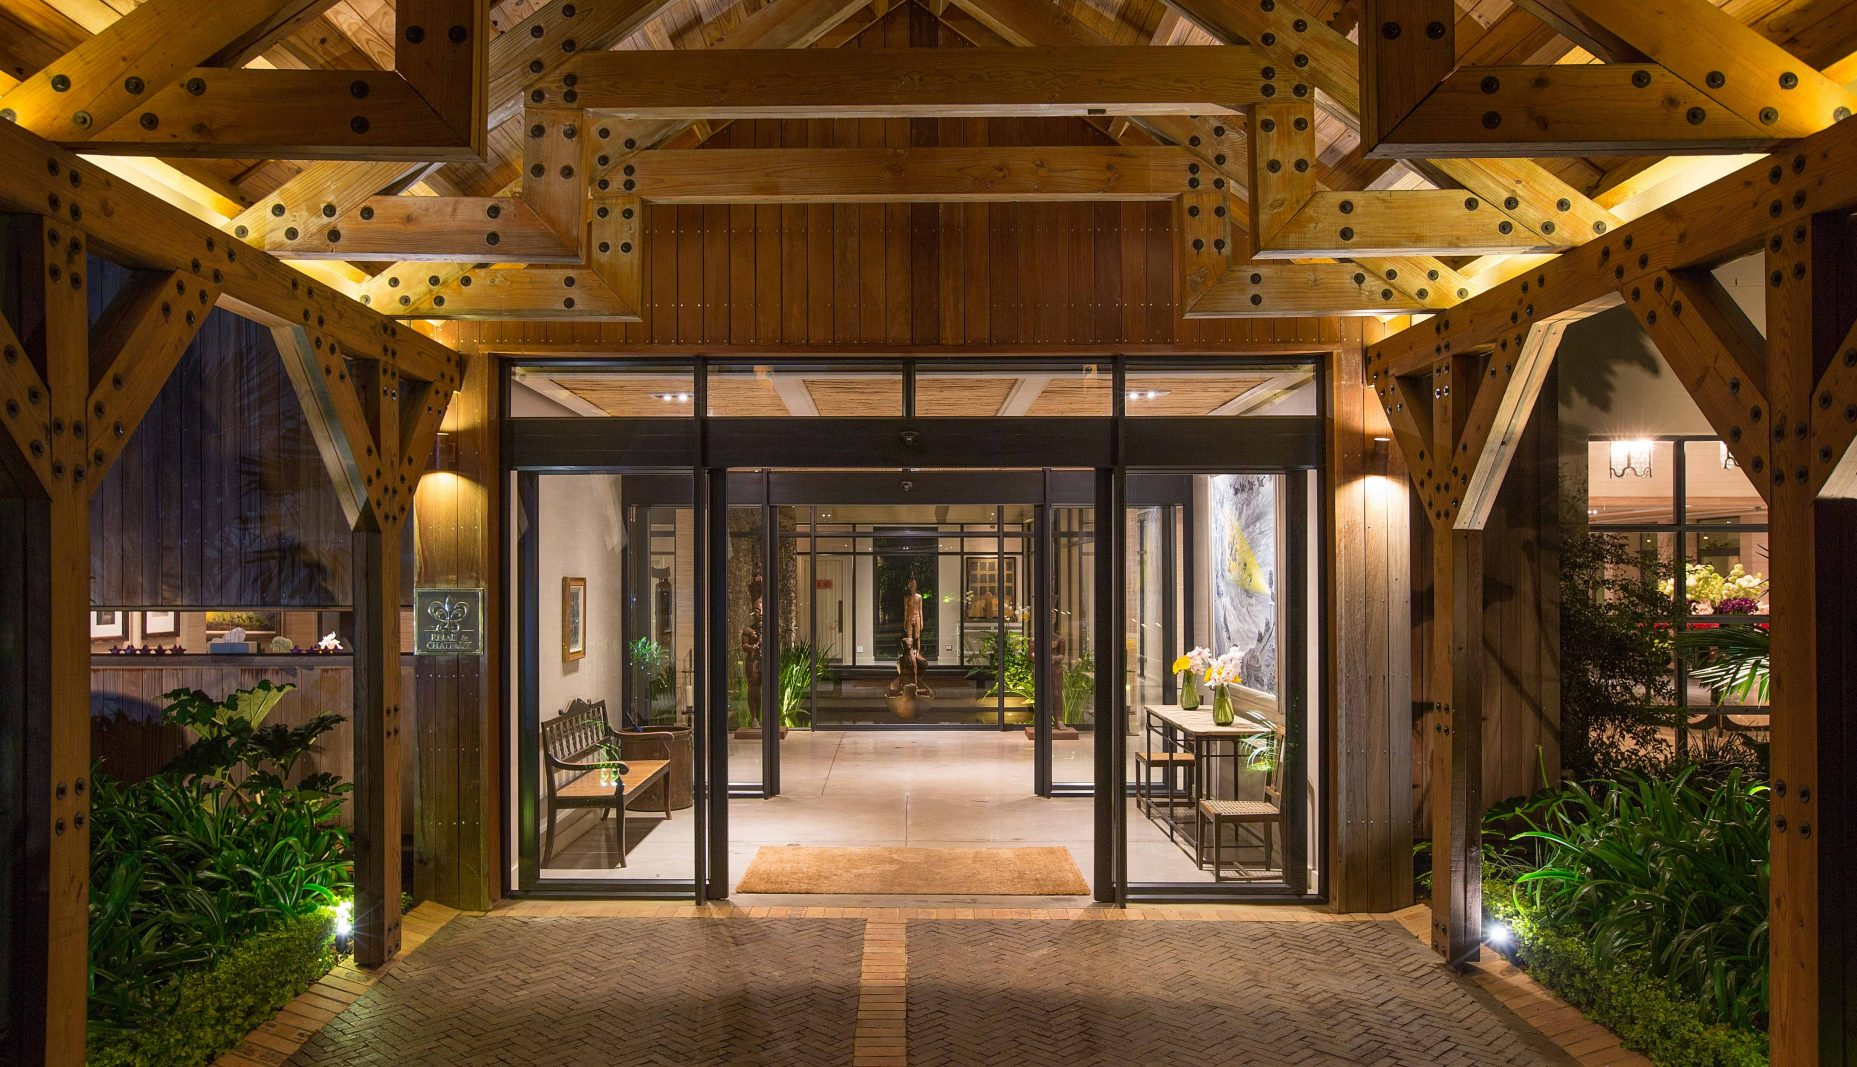 The-Delaire-Graff-Estate-offers-absolute-luxury-to-those-in-the-know